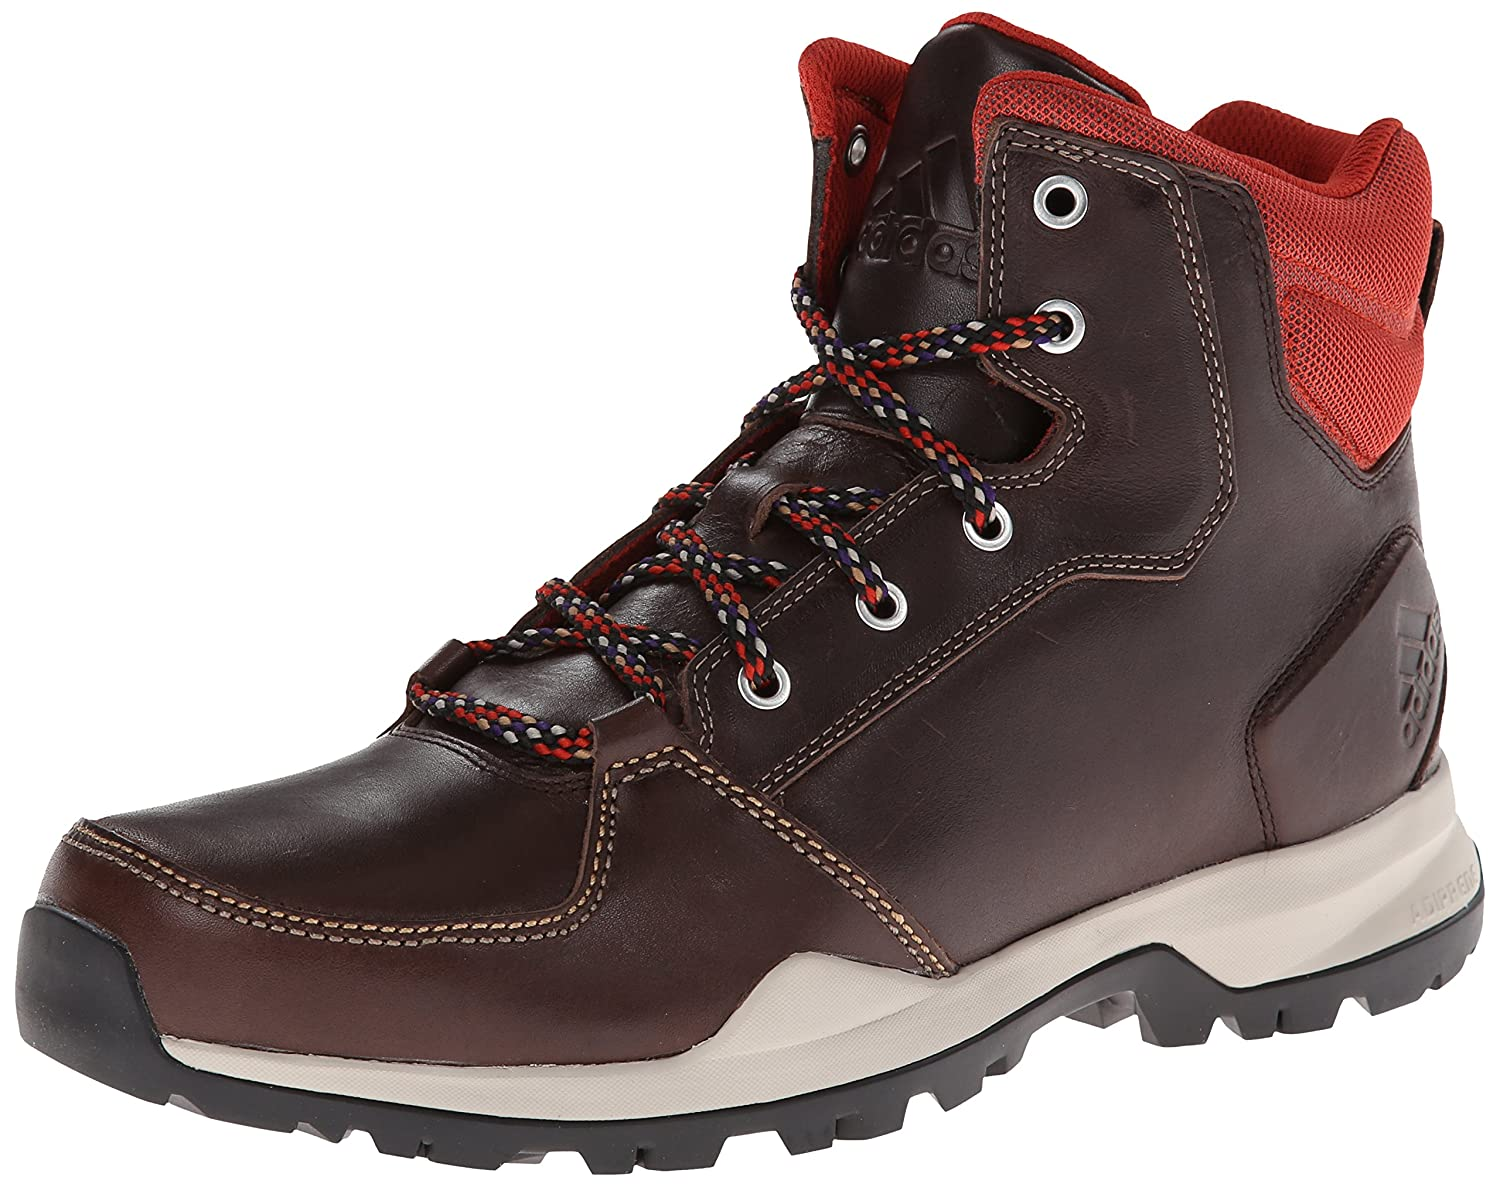 adidas Outdoor RockStack Mid Leather Hiking Boot - Men's